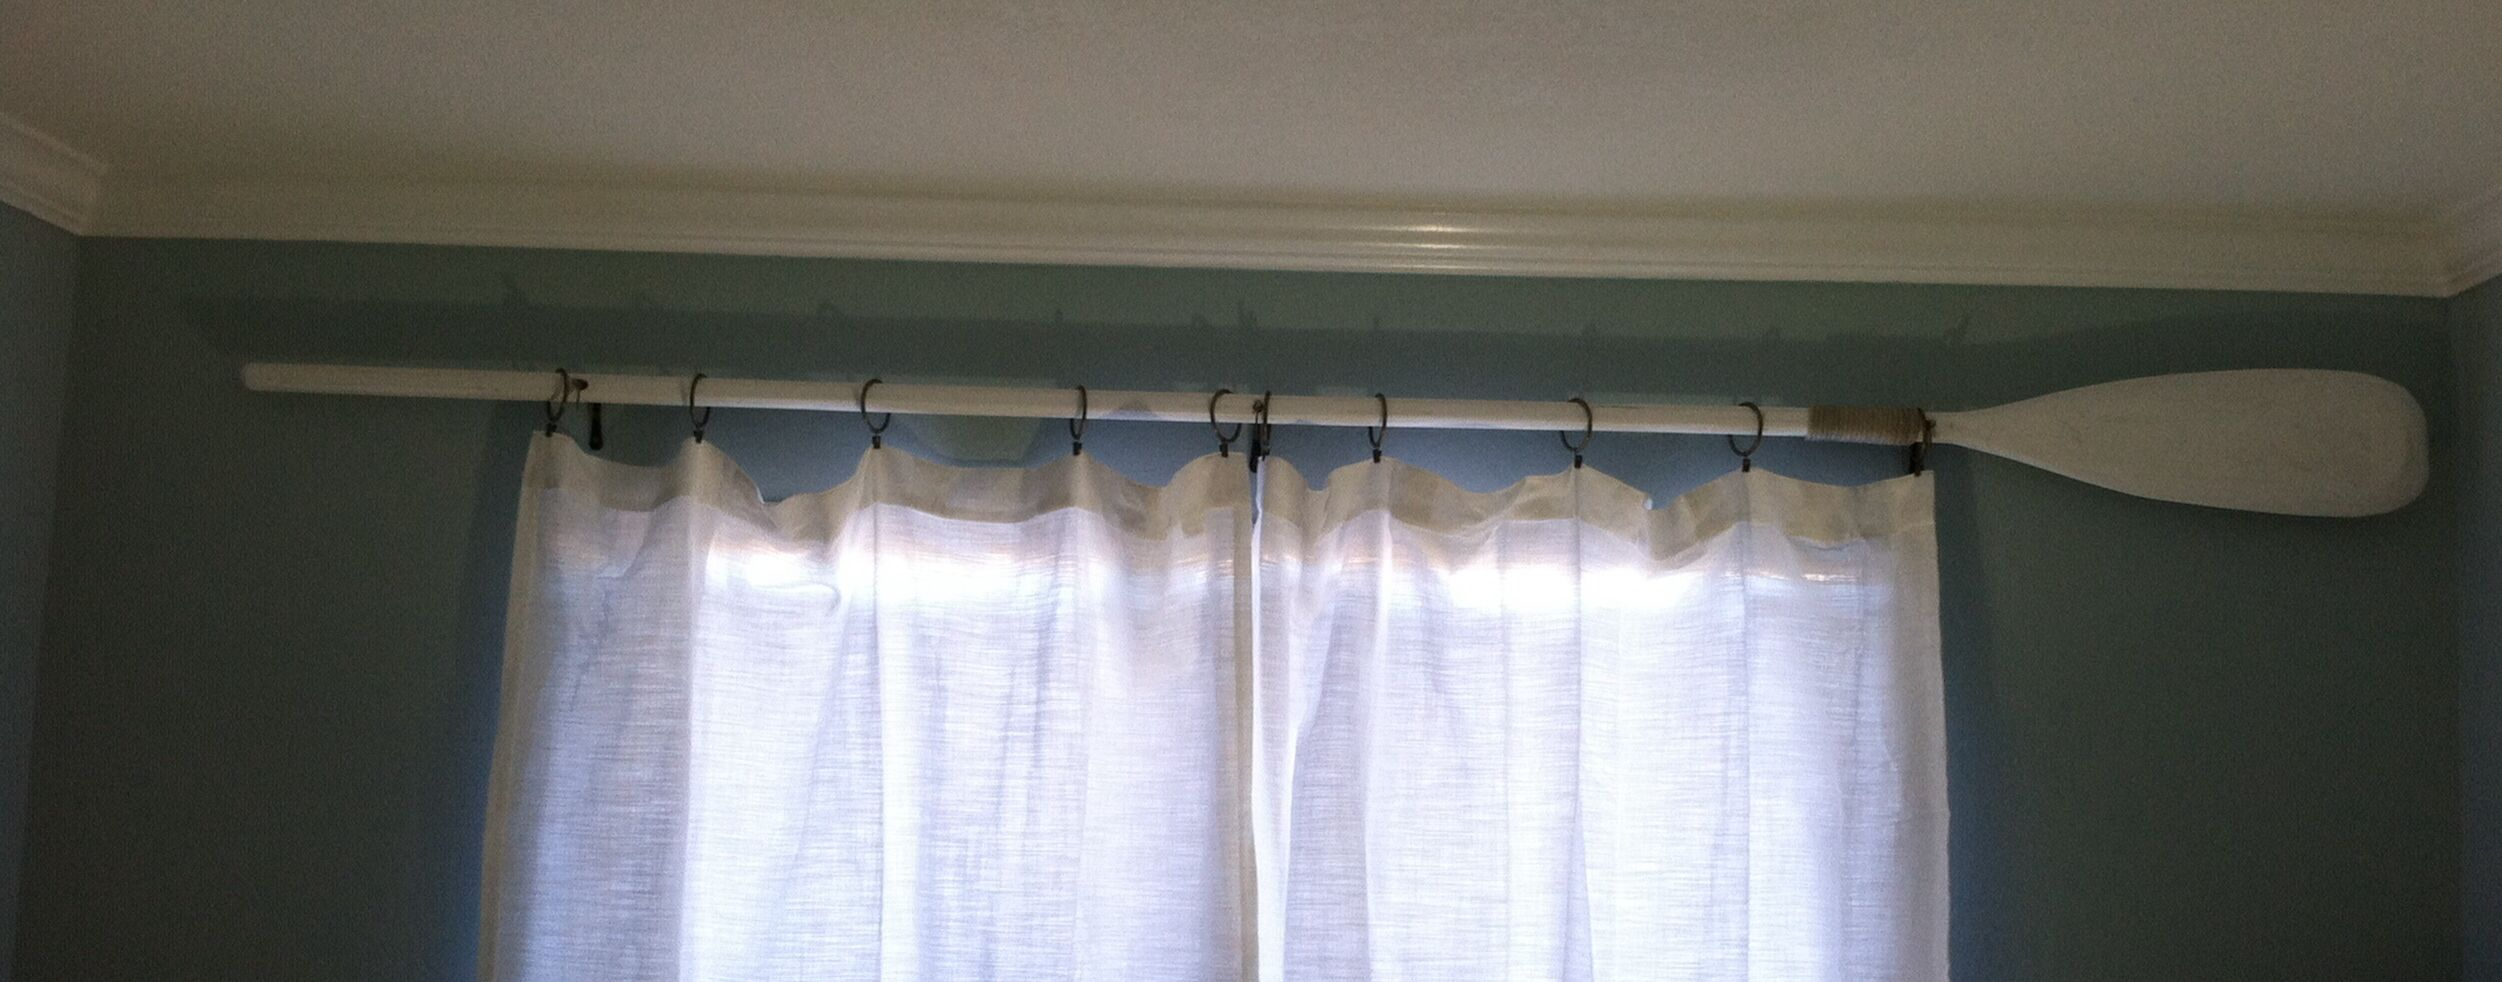 Oar Curtain Rod Handmade By The Hubby Curtains Curtain Rods